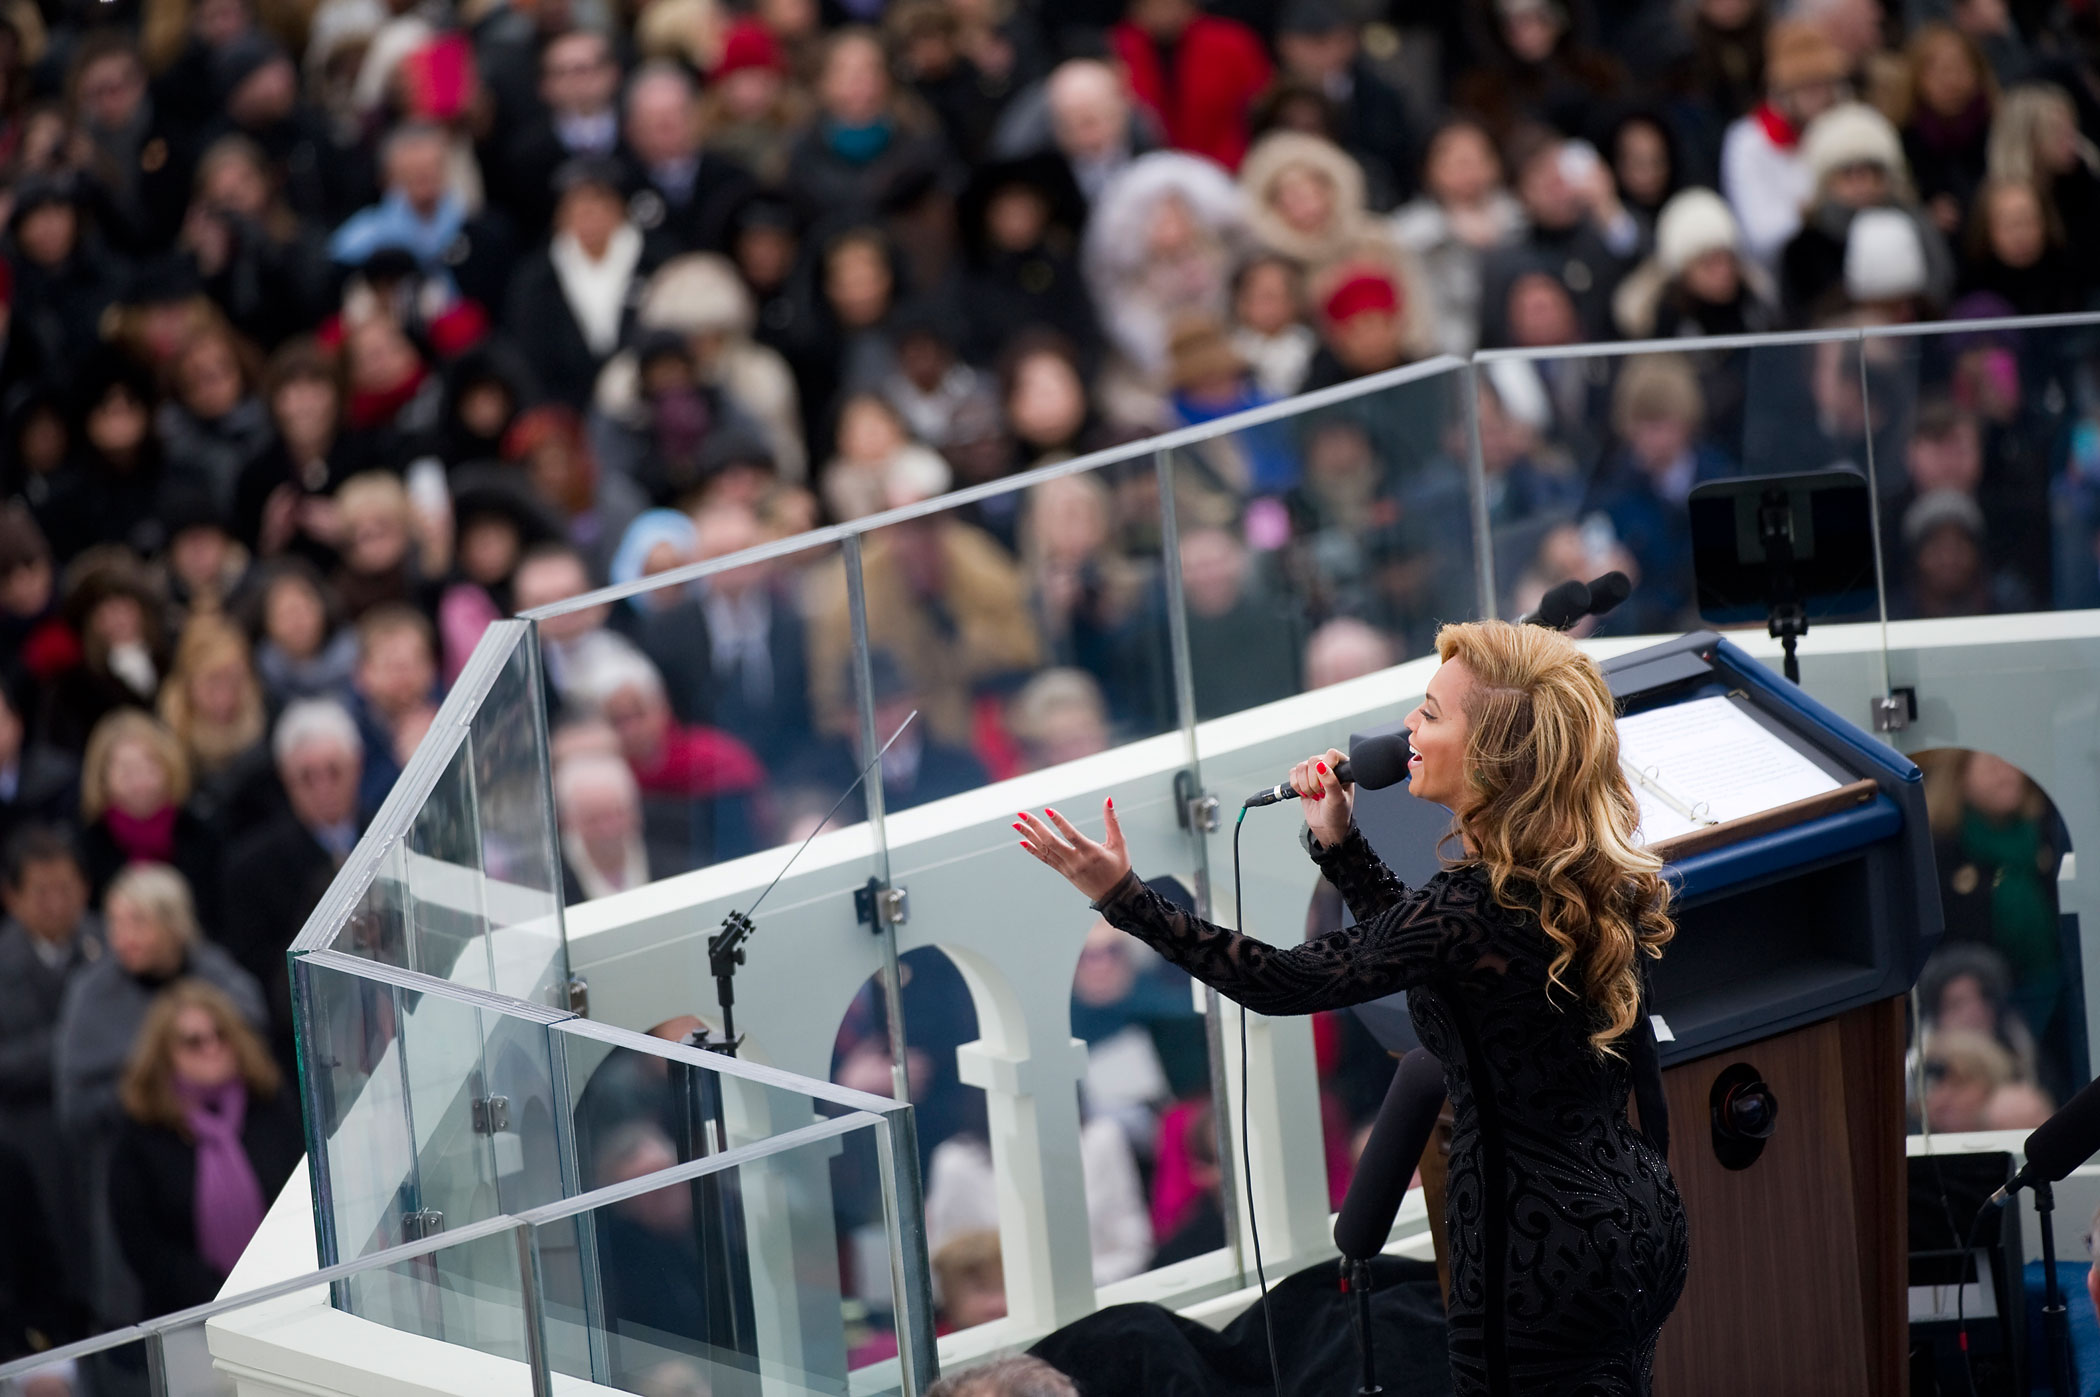 Beyonce sings the National Anthem at the inauguration for U.S. President Barack Obama's second term of office.